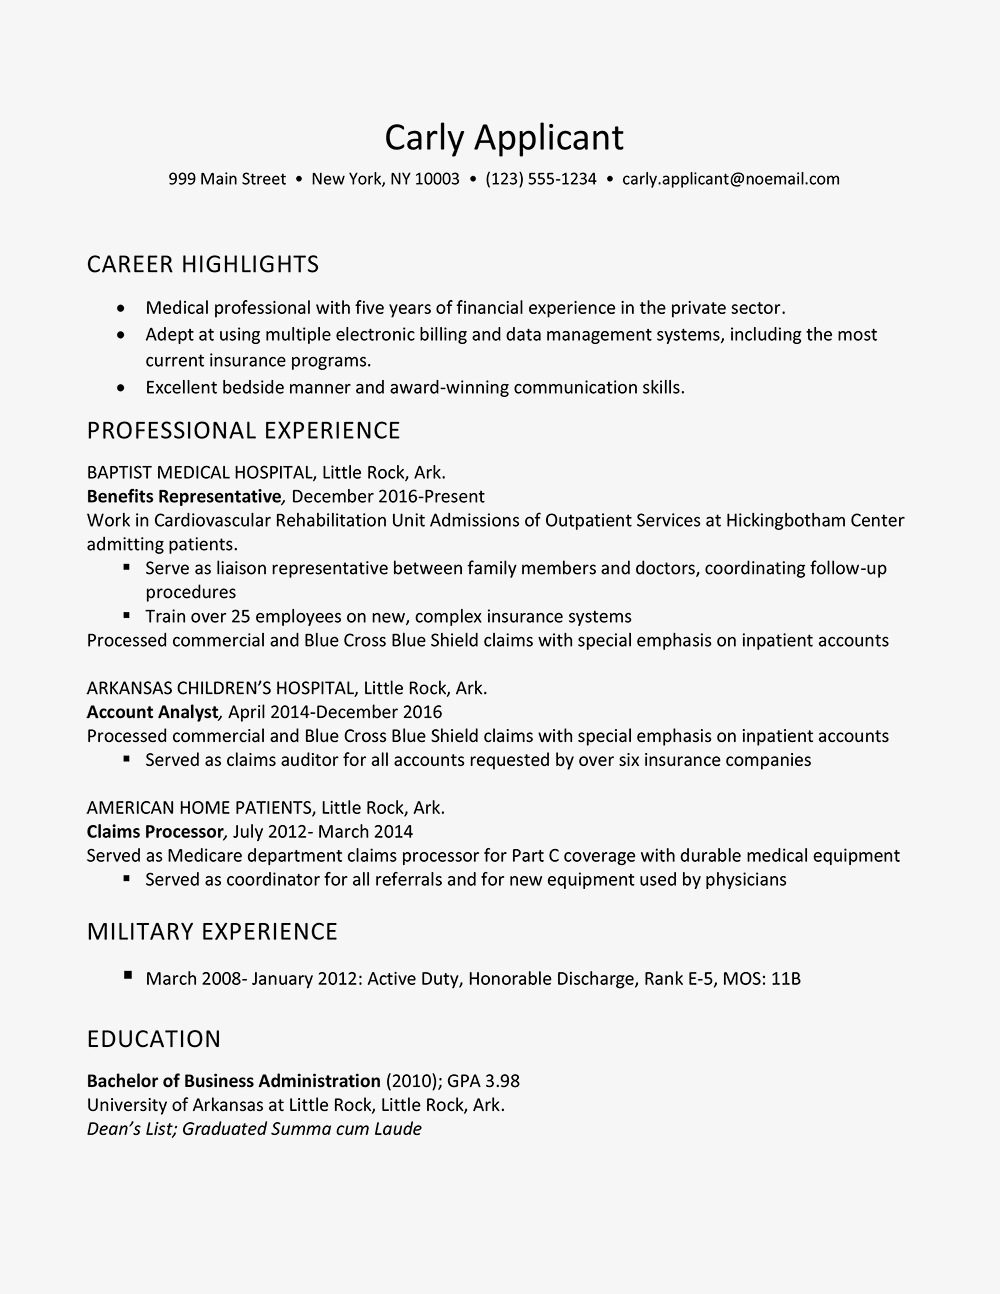 Health Insurance Agent Resume - Health Insurance Industry Resume Example